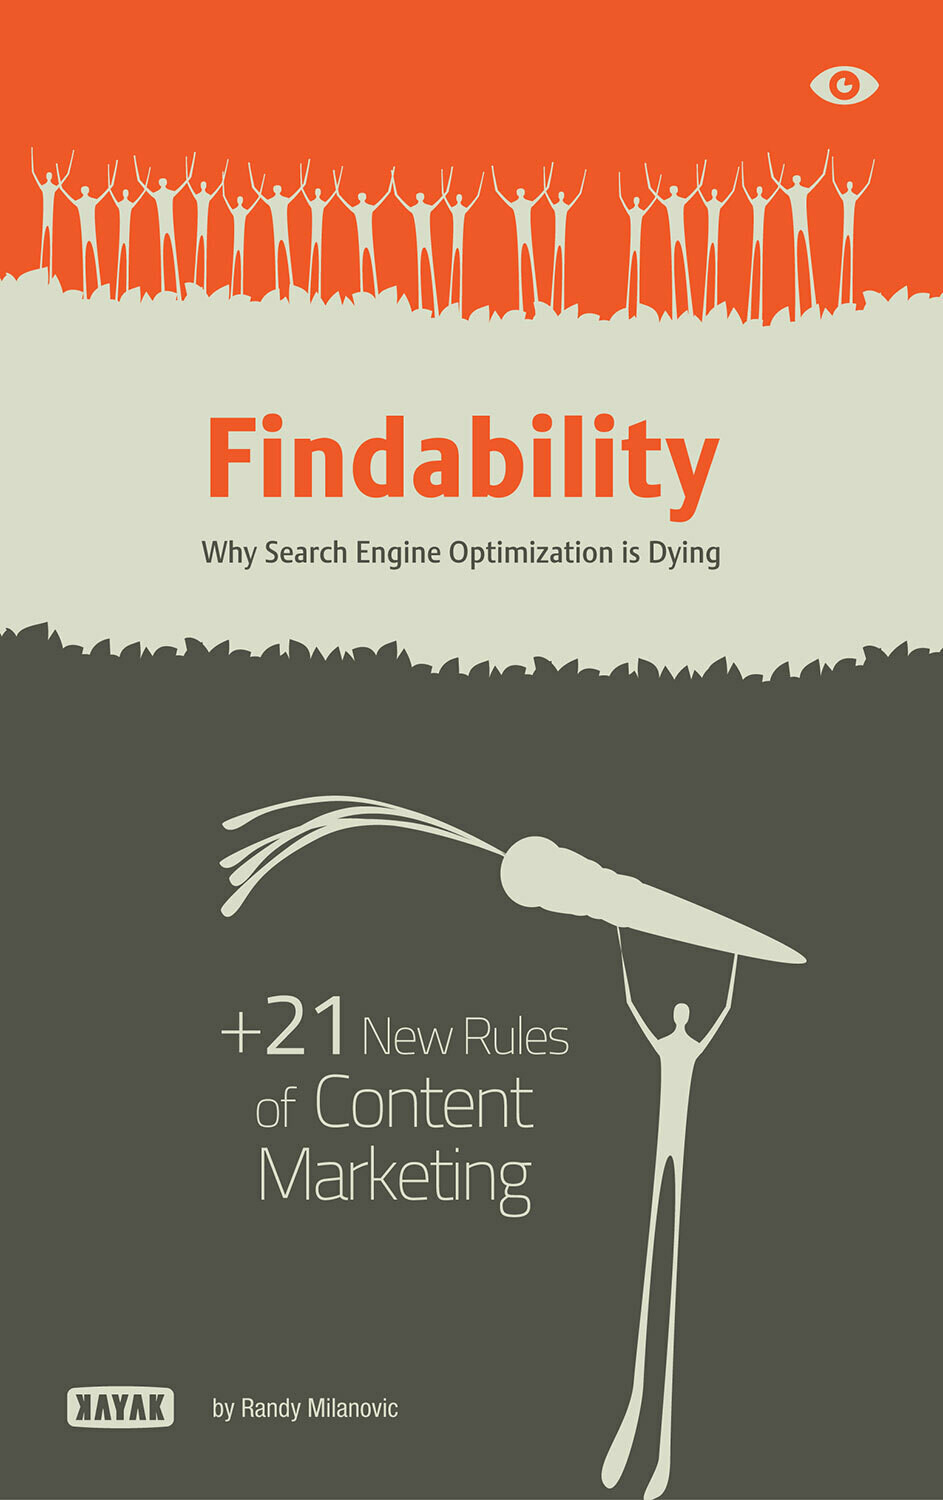 Findability: 21 New Rules of Content Marketing